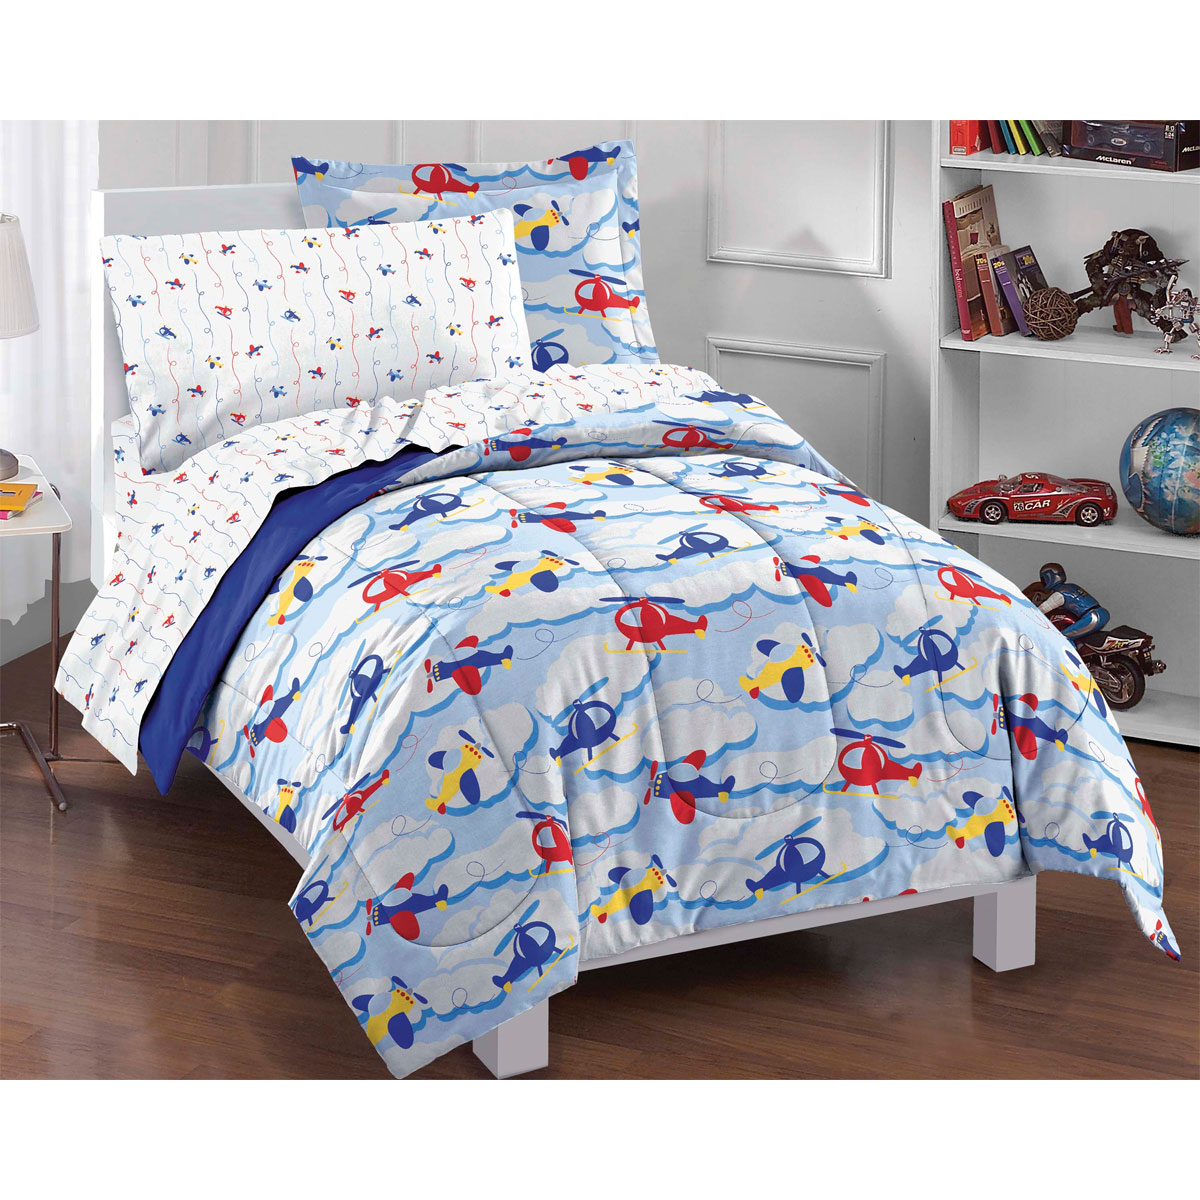 Helicopter Bedding Twin